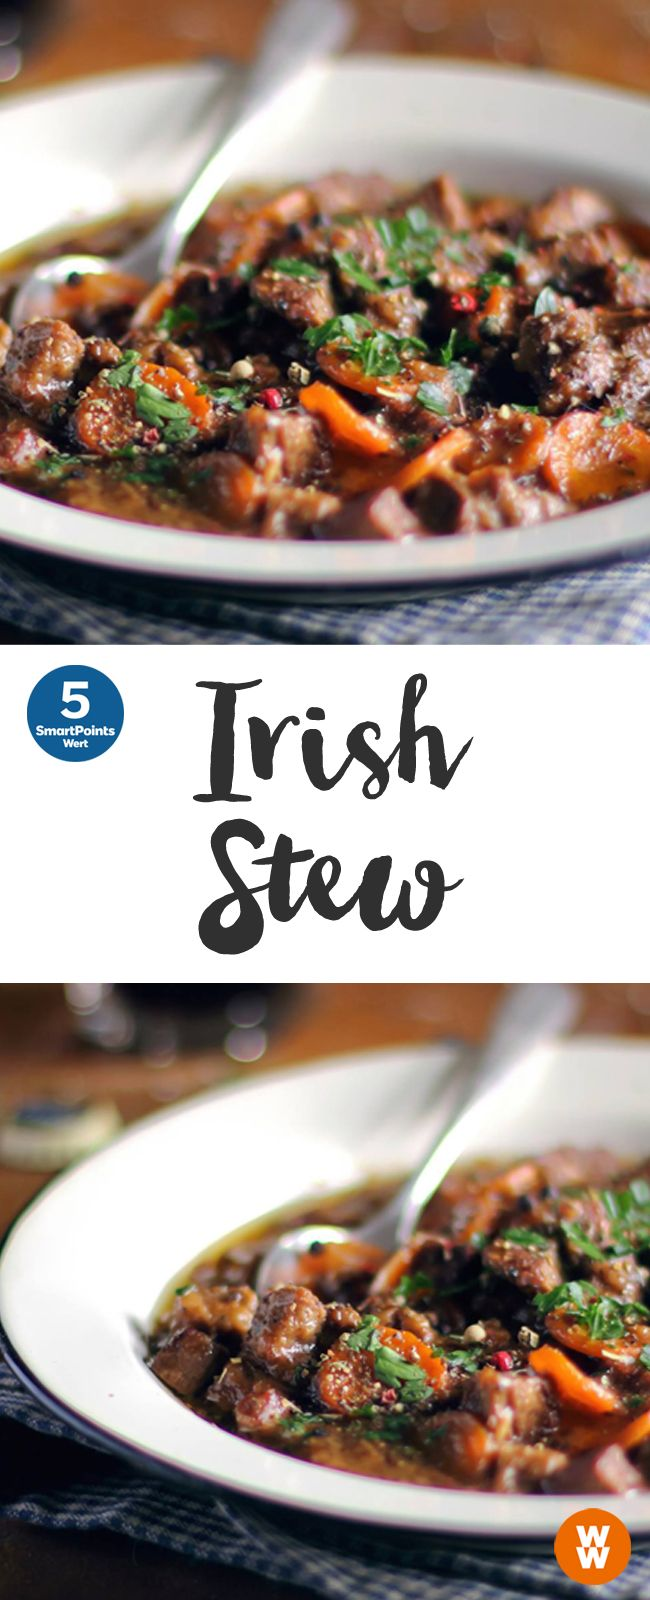 Irish Stew | 4 Portionen, 5 SmartPoints/Portion, Weight Watchers, fertig in 60 min.